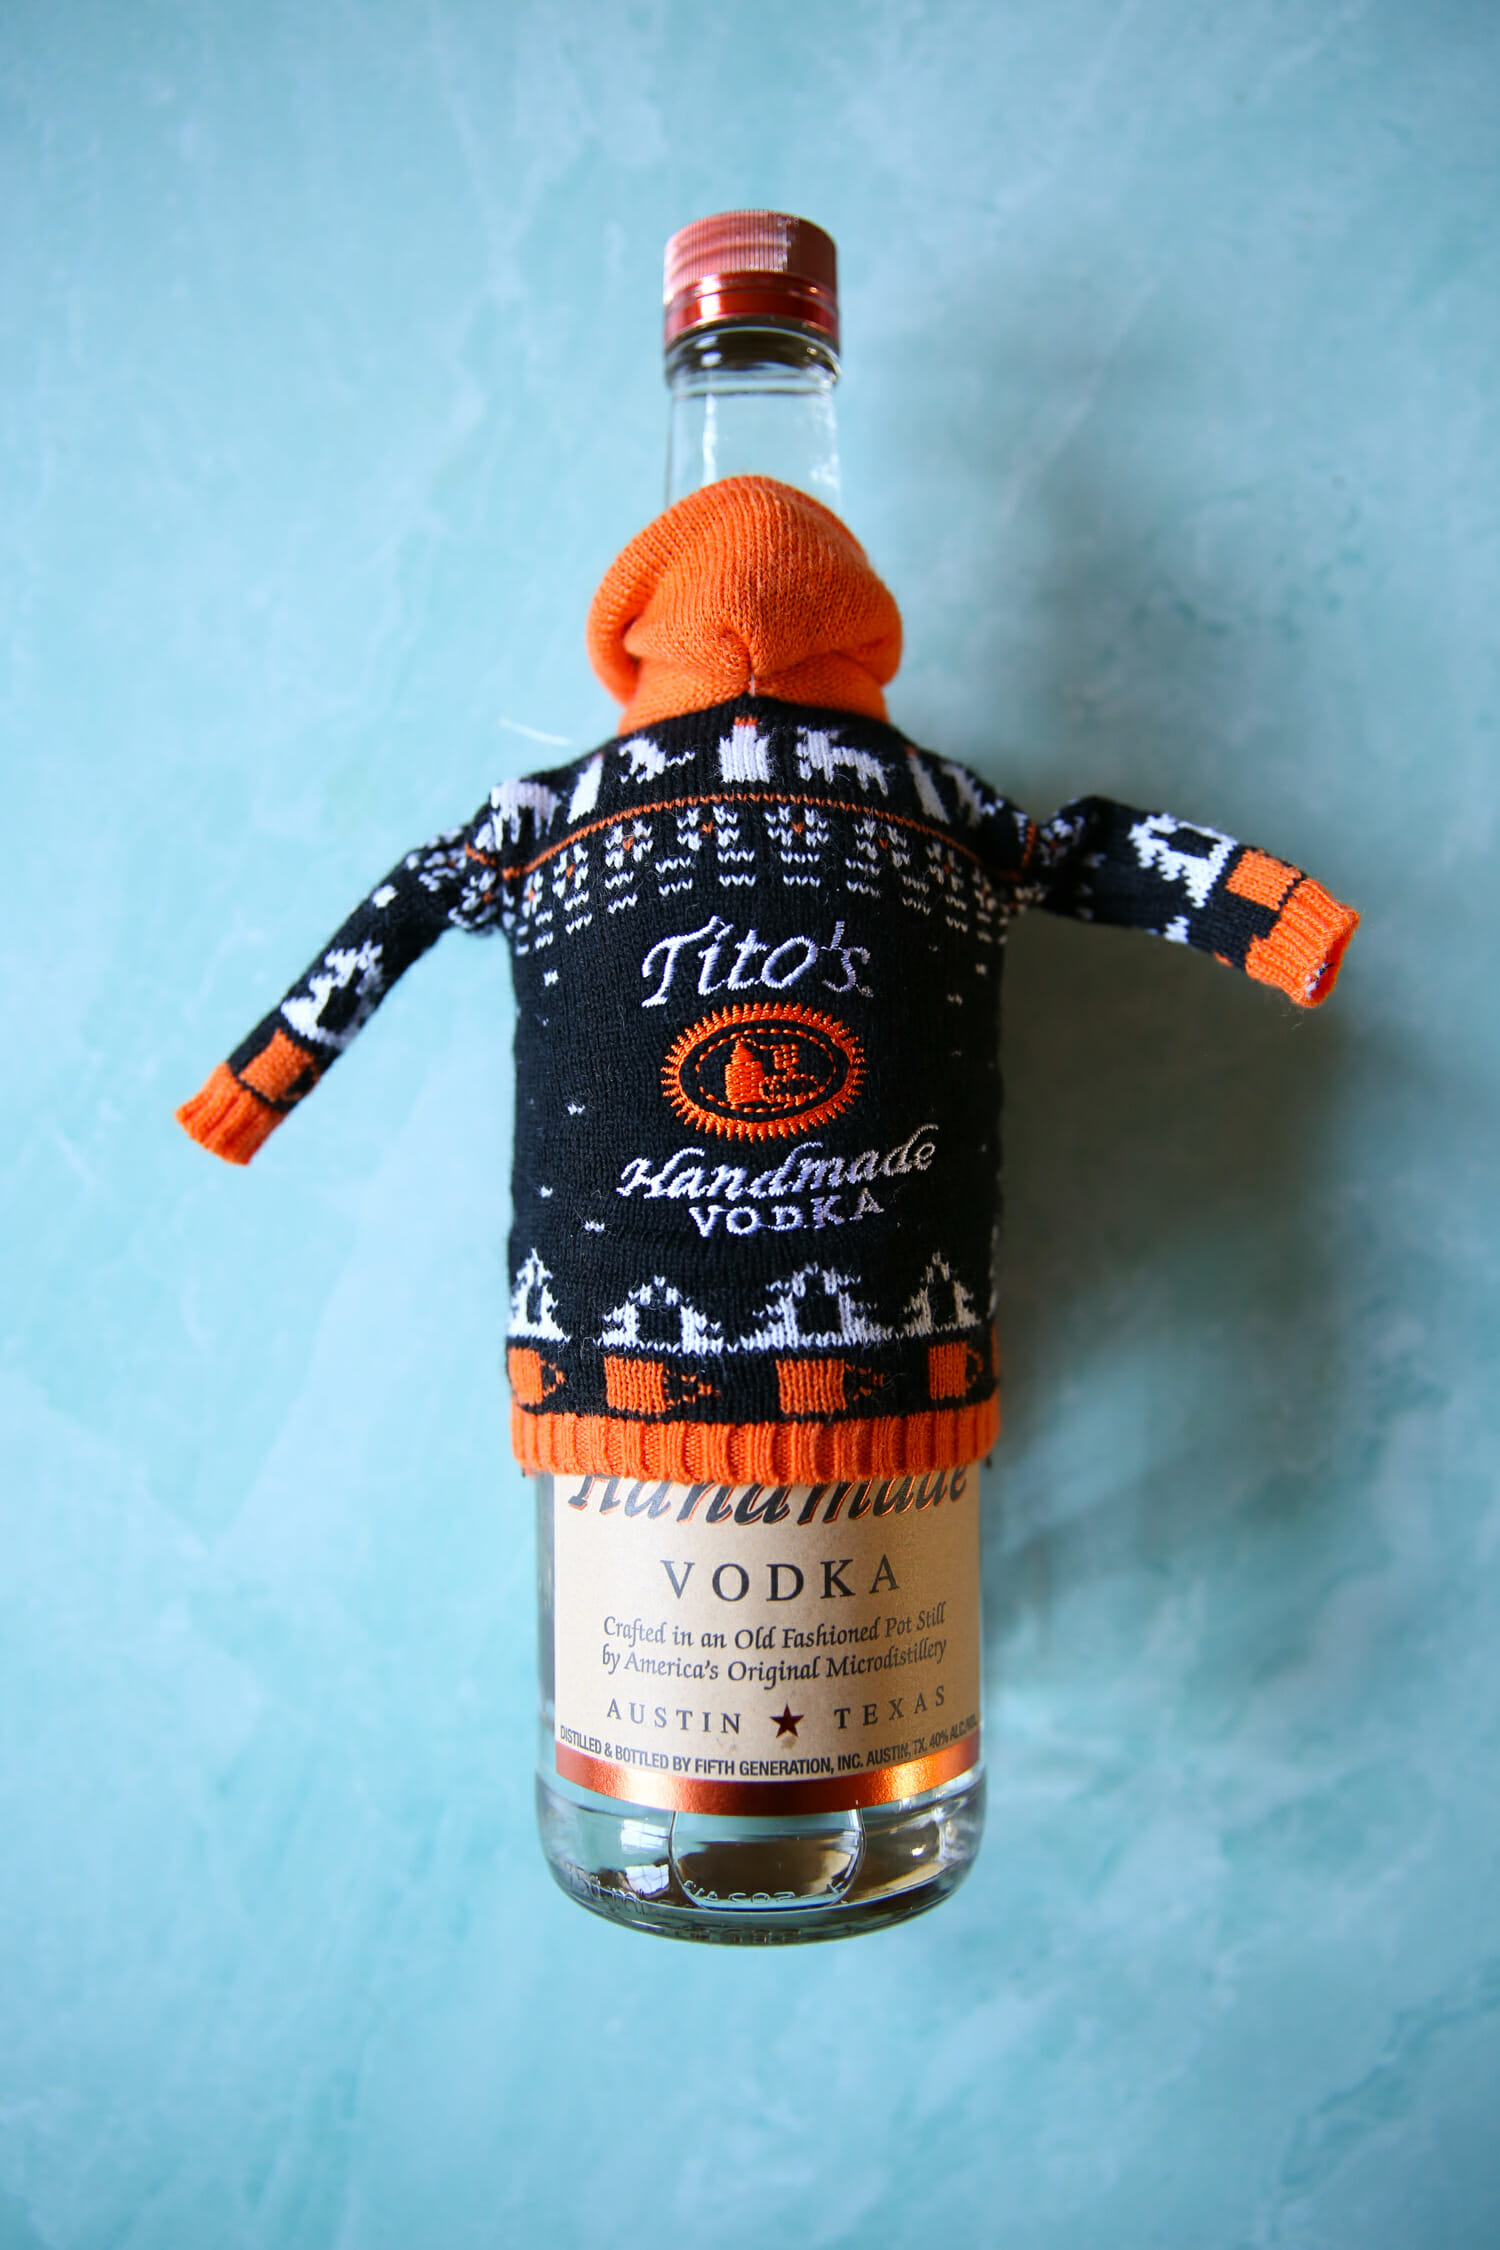 Tito's vodka with a sweater